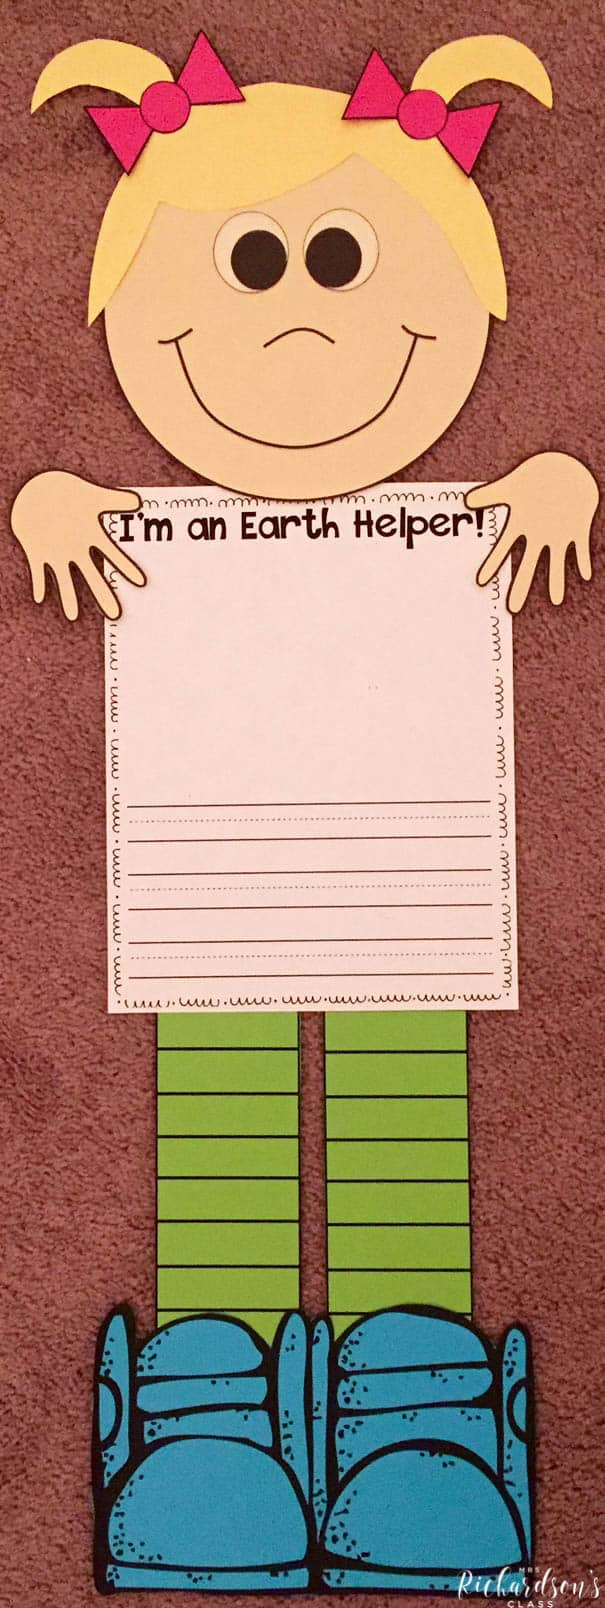 Get your students writing about earth day with their plan to be an Earth Helper! My first grade and kindergarten students loved this earth day activity!